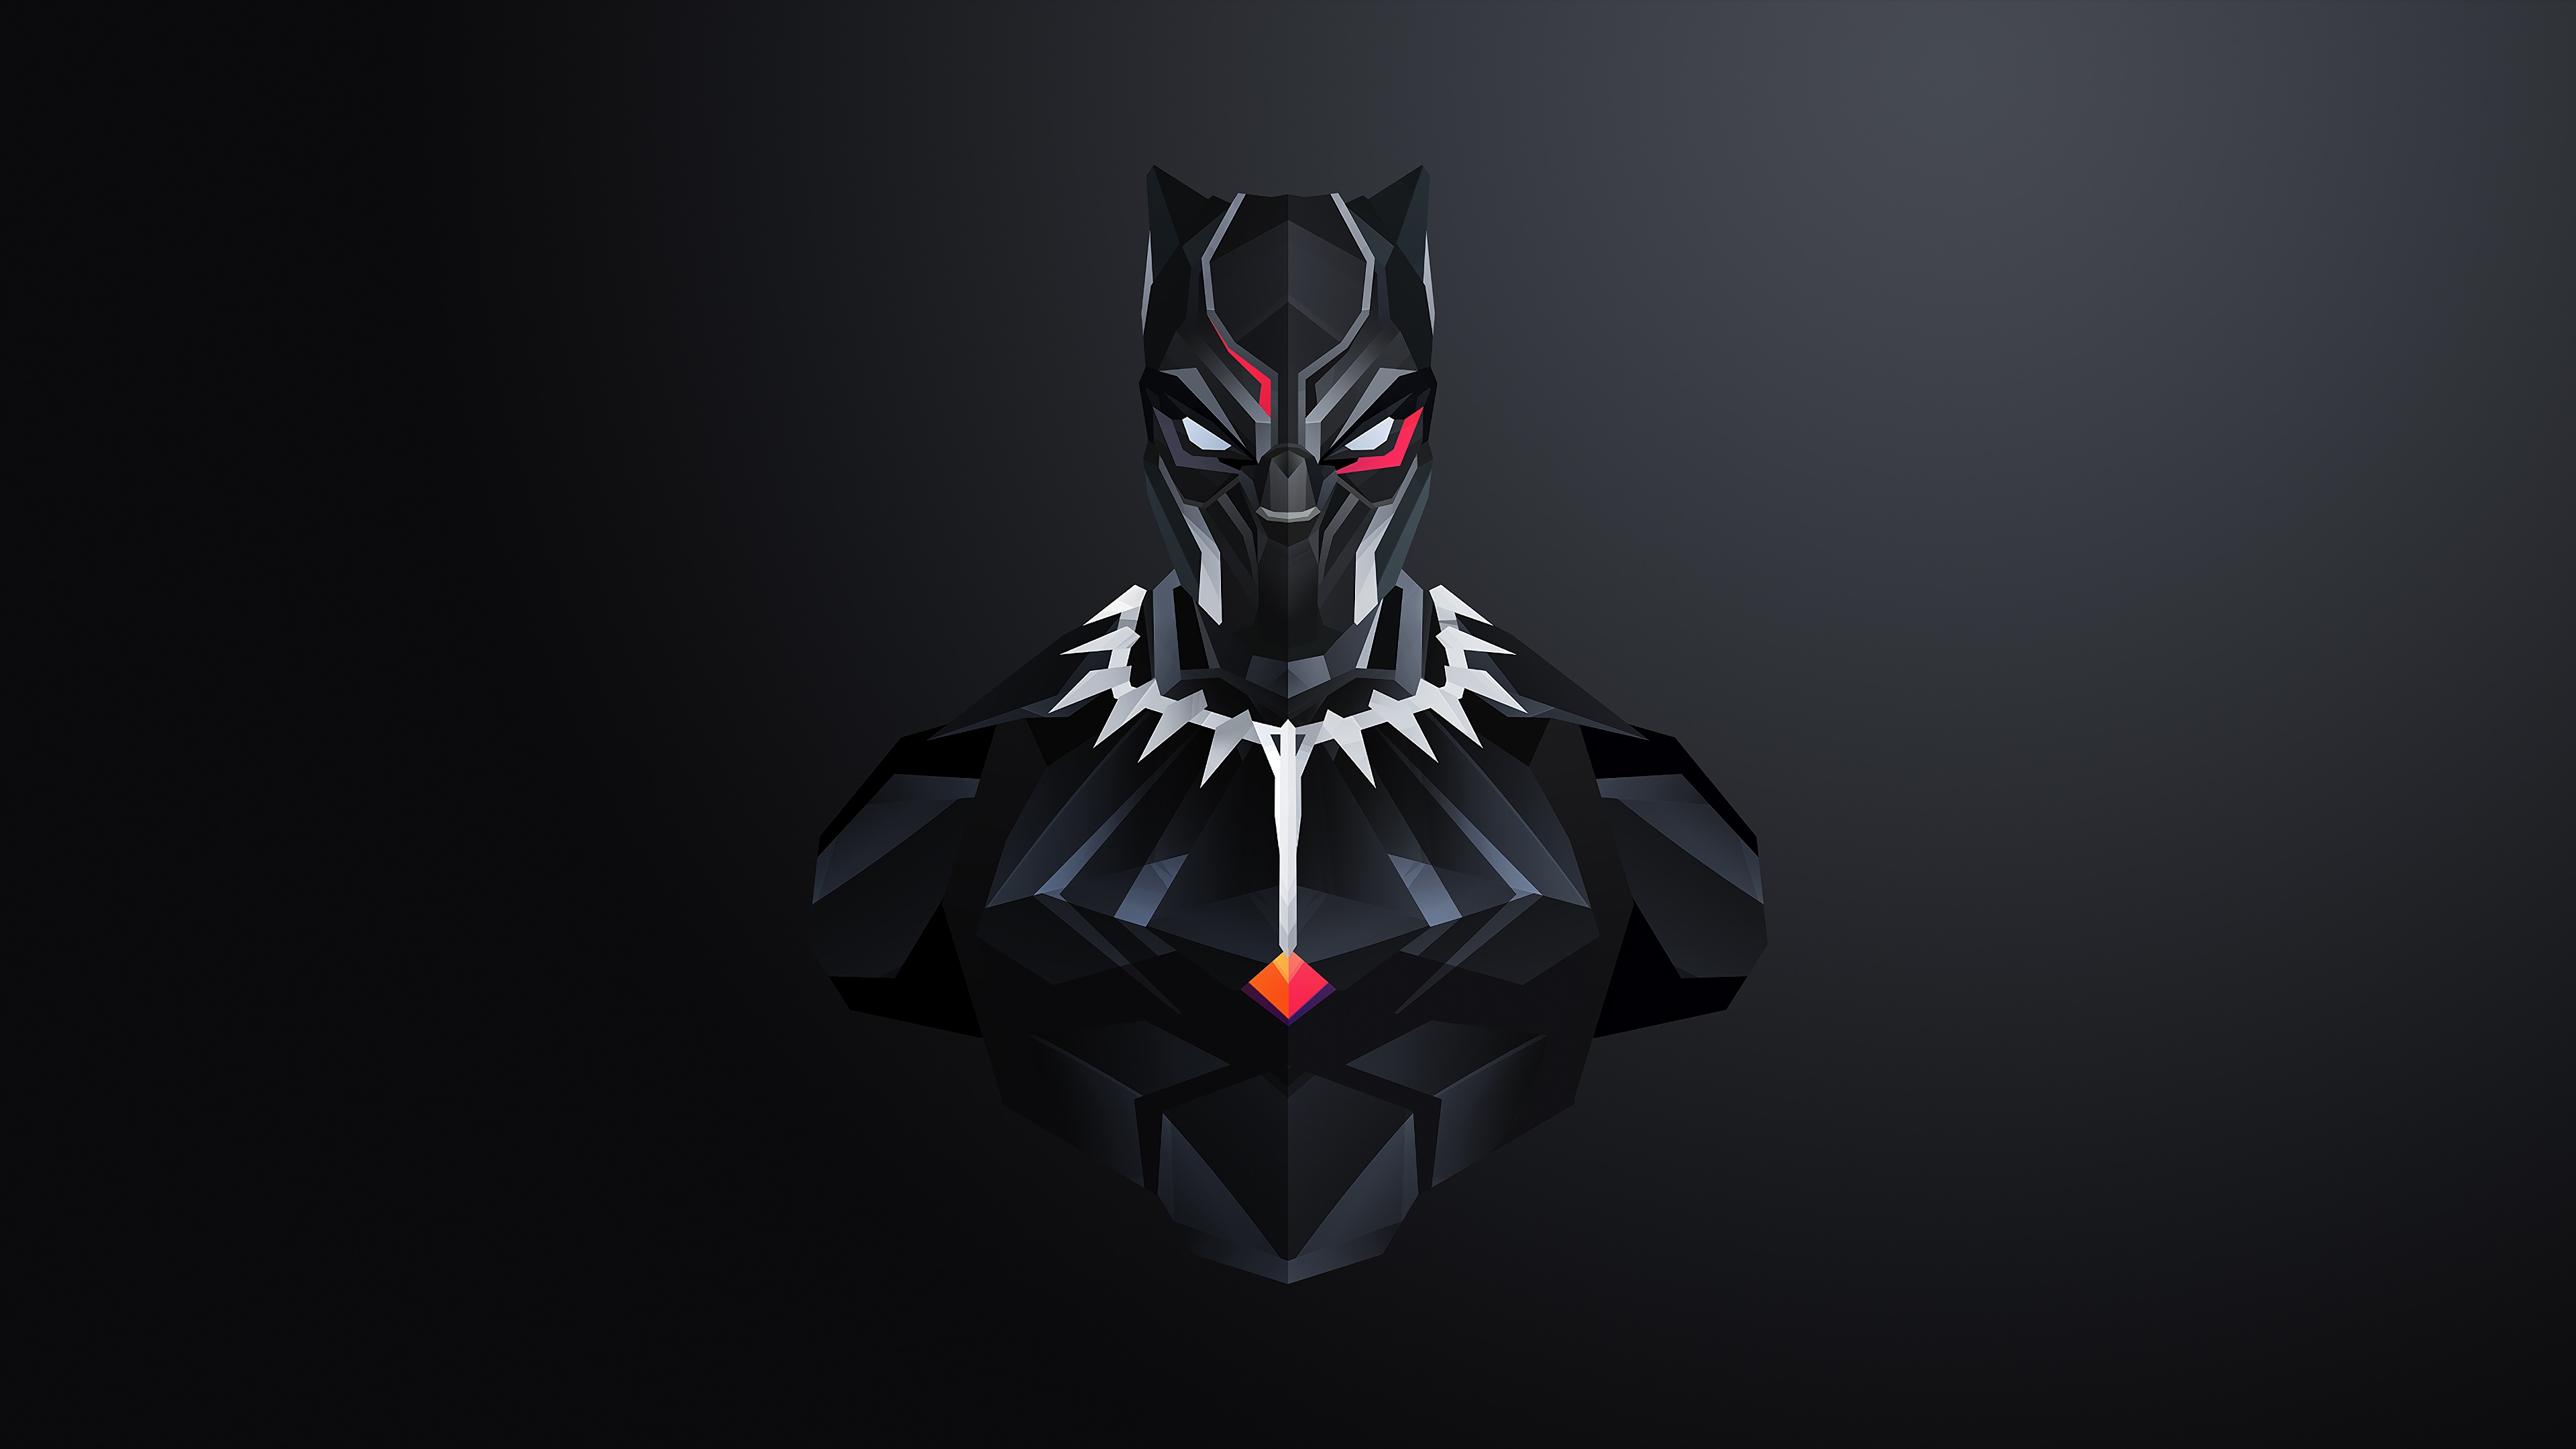 Black Panther 2018 Movie Still Full Hd Wallpaper: Black Panther Minimalism 2018, HD Movies, 4k Wallpapers